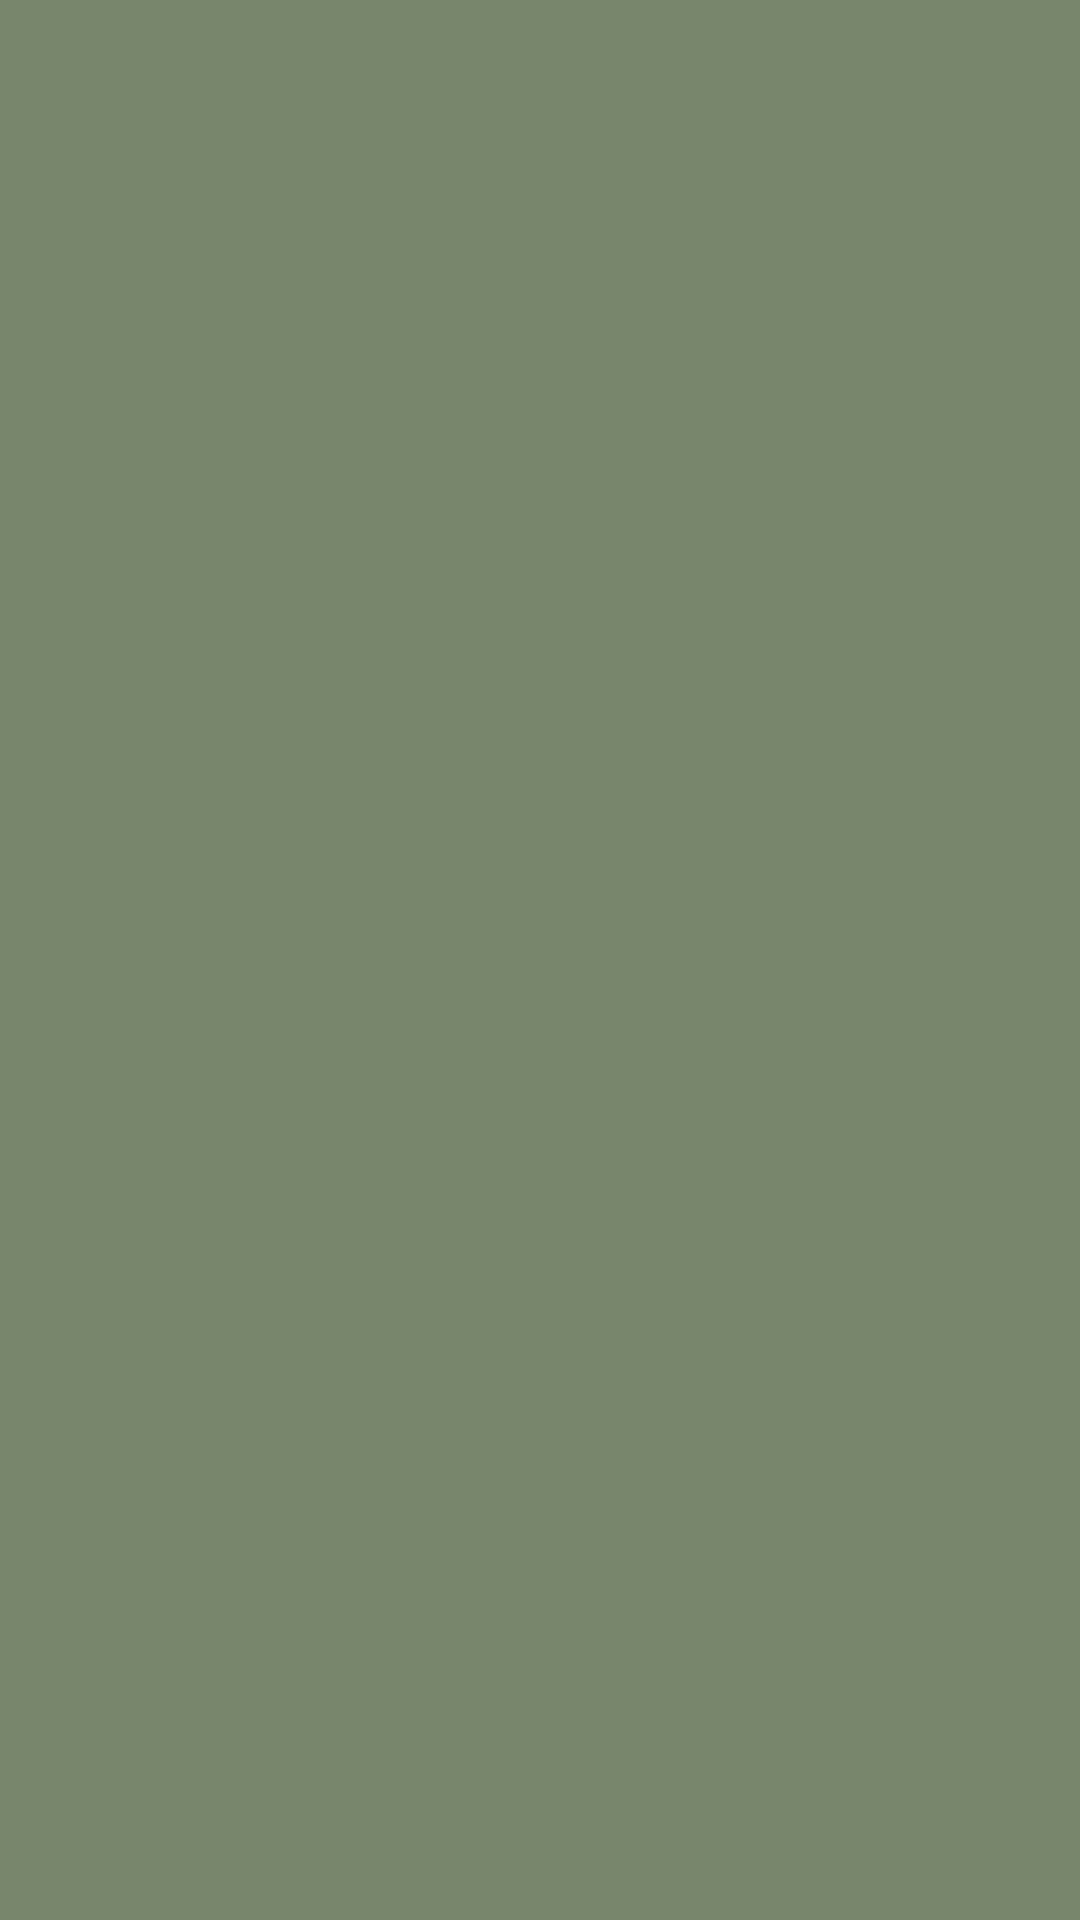 1080x1920 Camouflage Green Solid Color Background